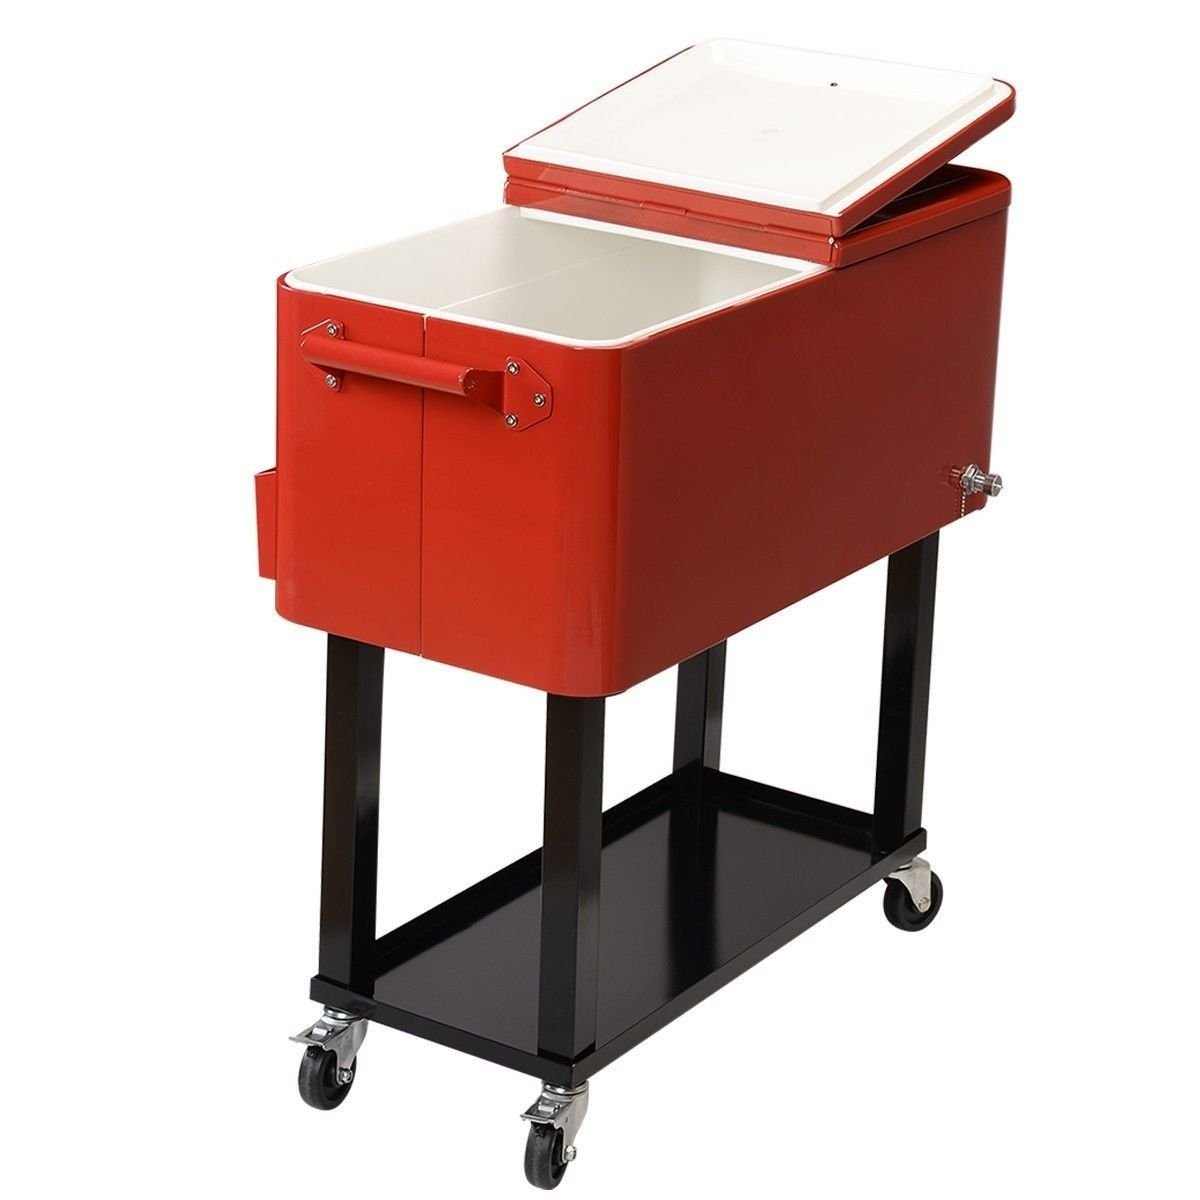 Home Patio Deck Cooler Rolling Outdoor 80 Quart Solid Steel Construction Party .sell#(ideacharms ,ket147131810023637